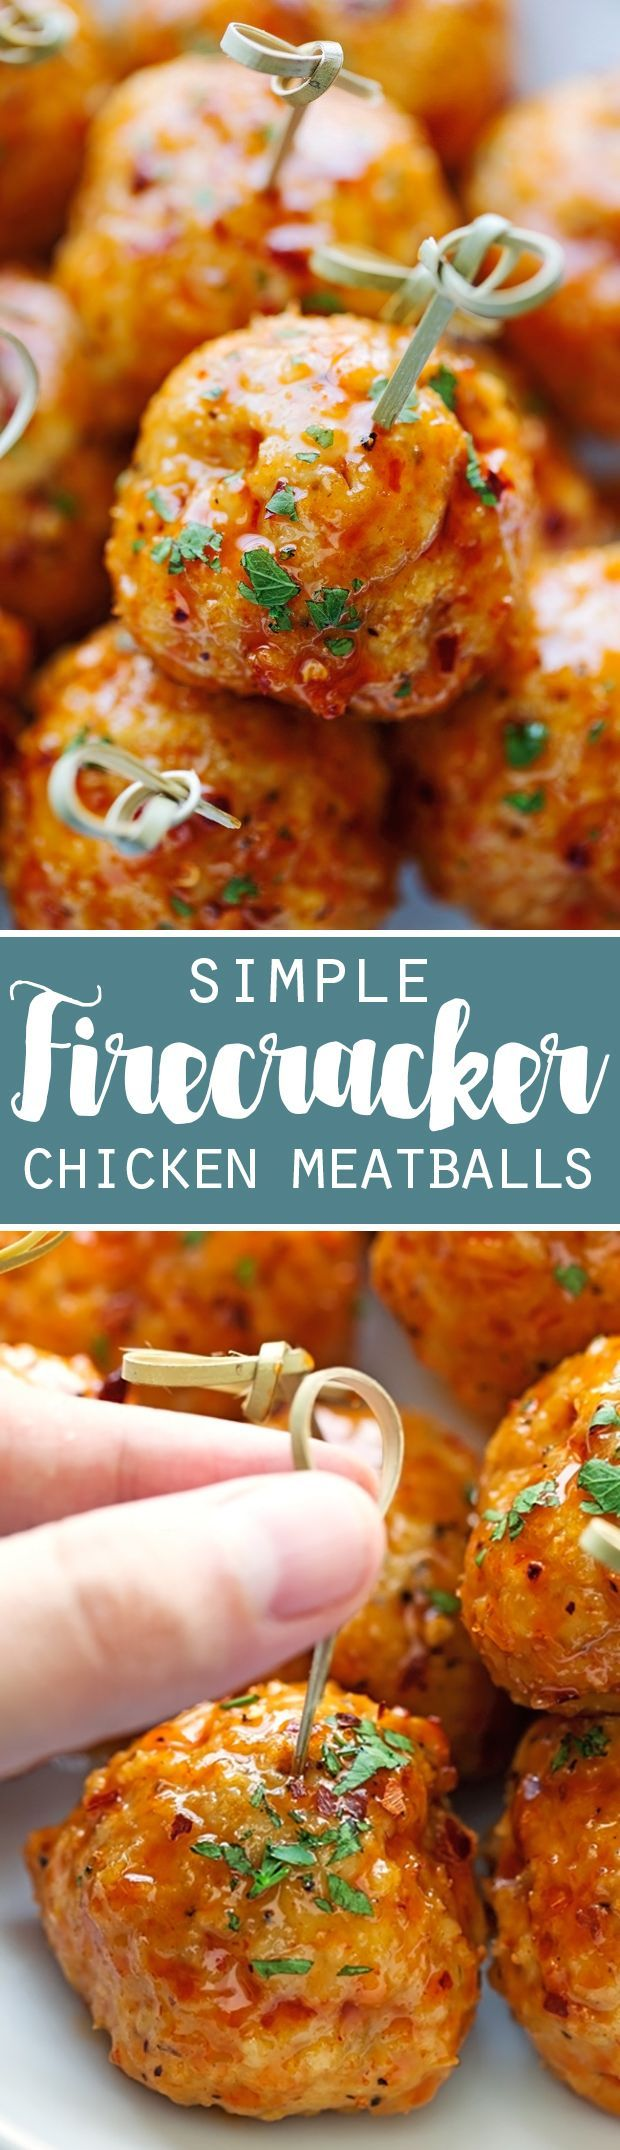 Firecracker Chicken Meatballs - These meatballs are made with chicken and taste like firecracker chicken! Easy to prepare and ready in about 30 minutes! #meatballs #chickenmeatballs #gamedayfood | Littlespicejar.com